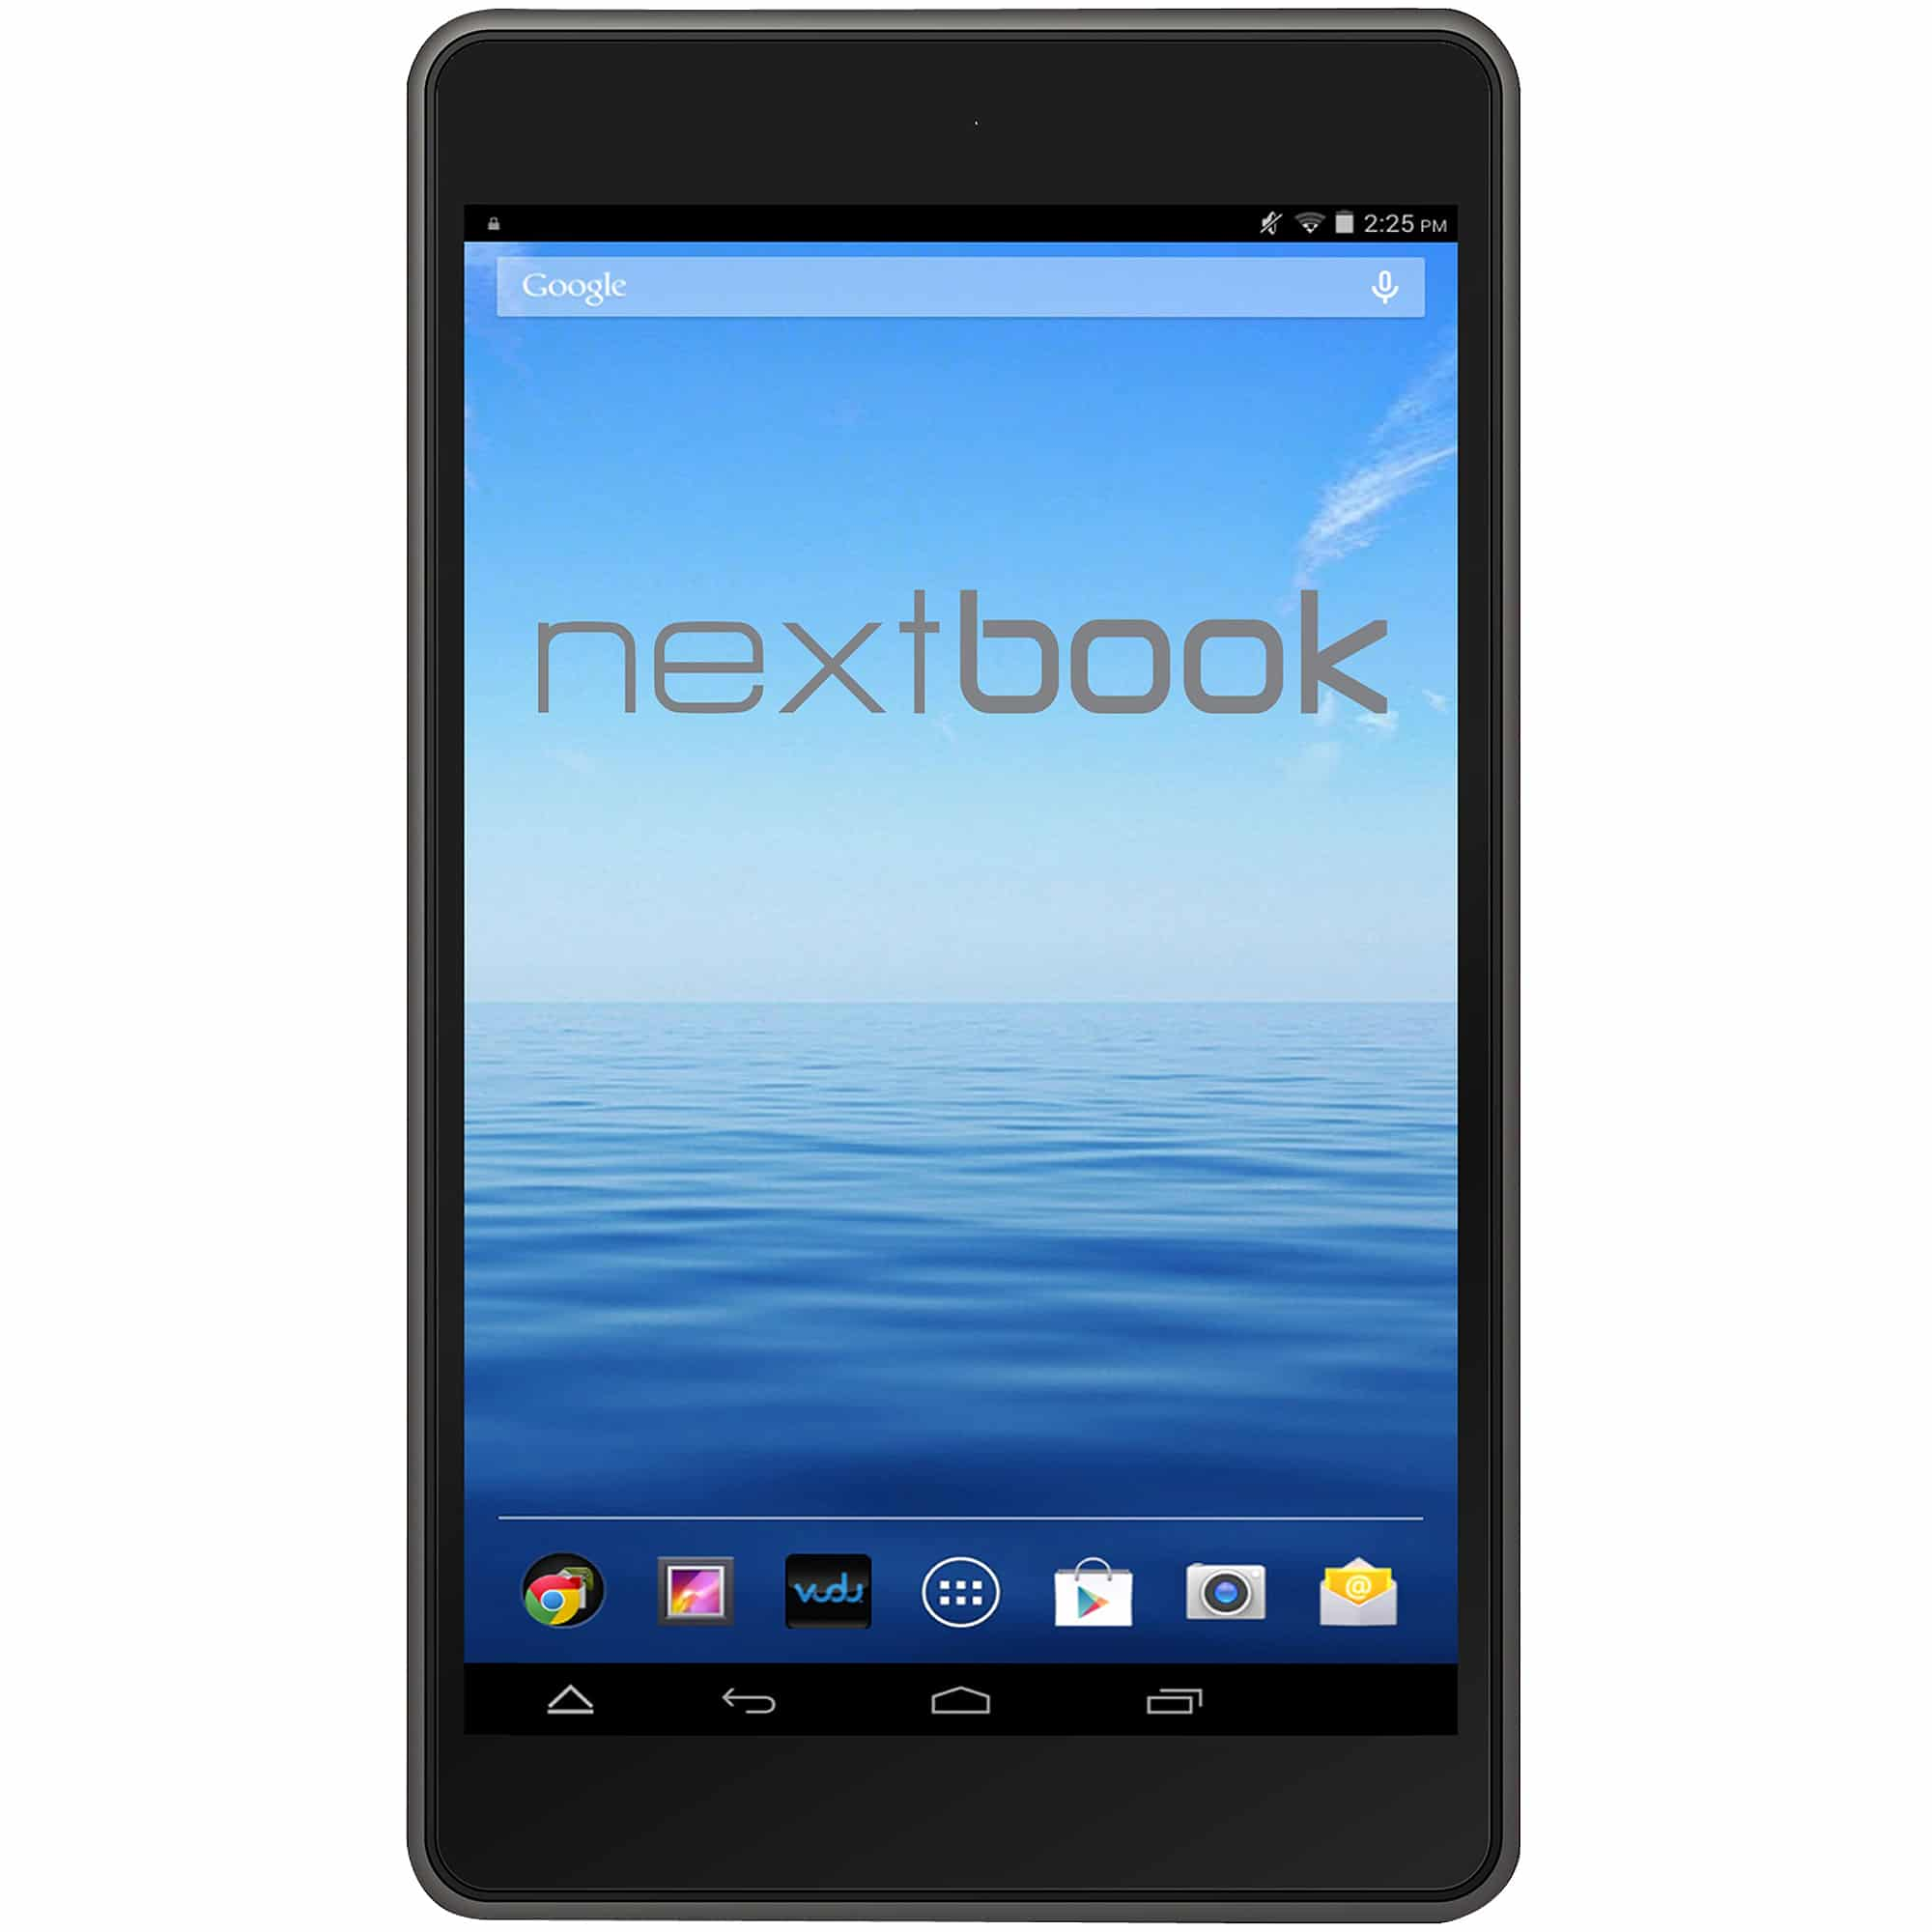 Guide on how to recover your Nextbook password - Password Buddy